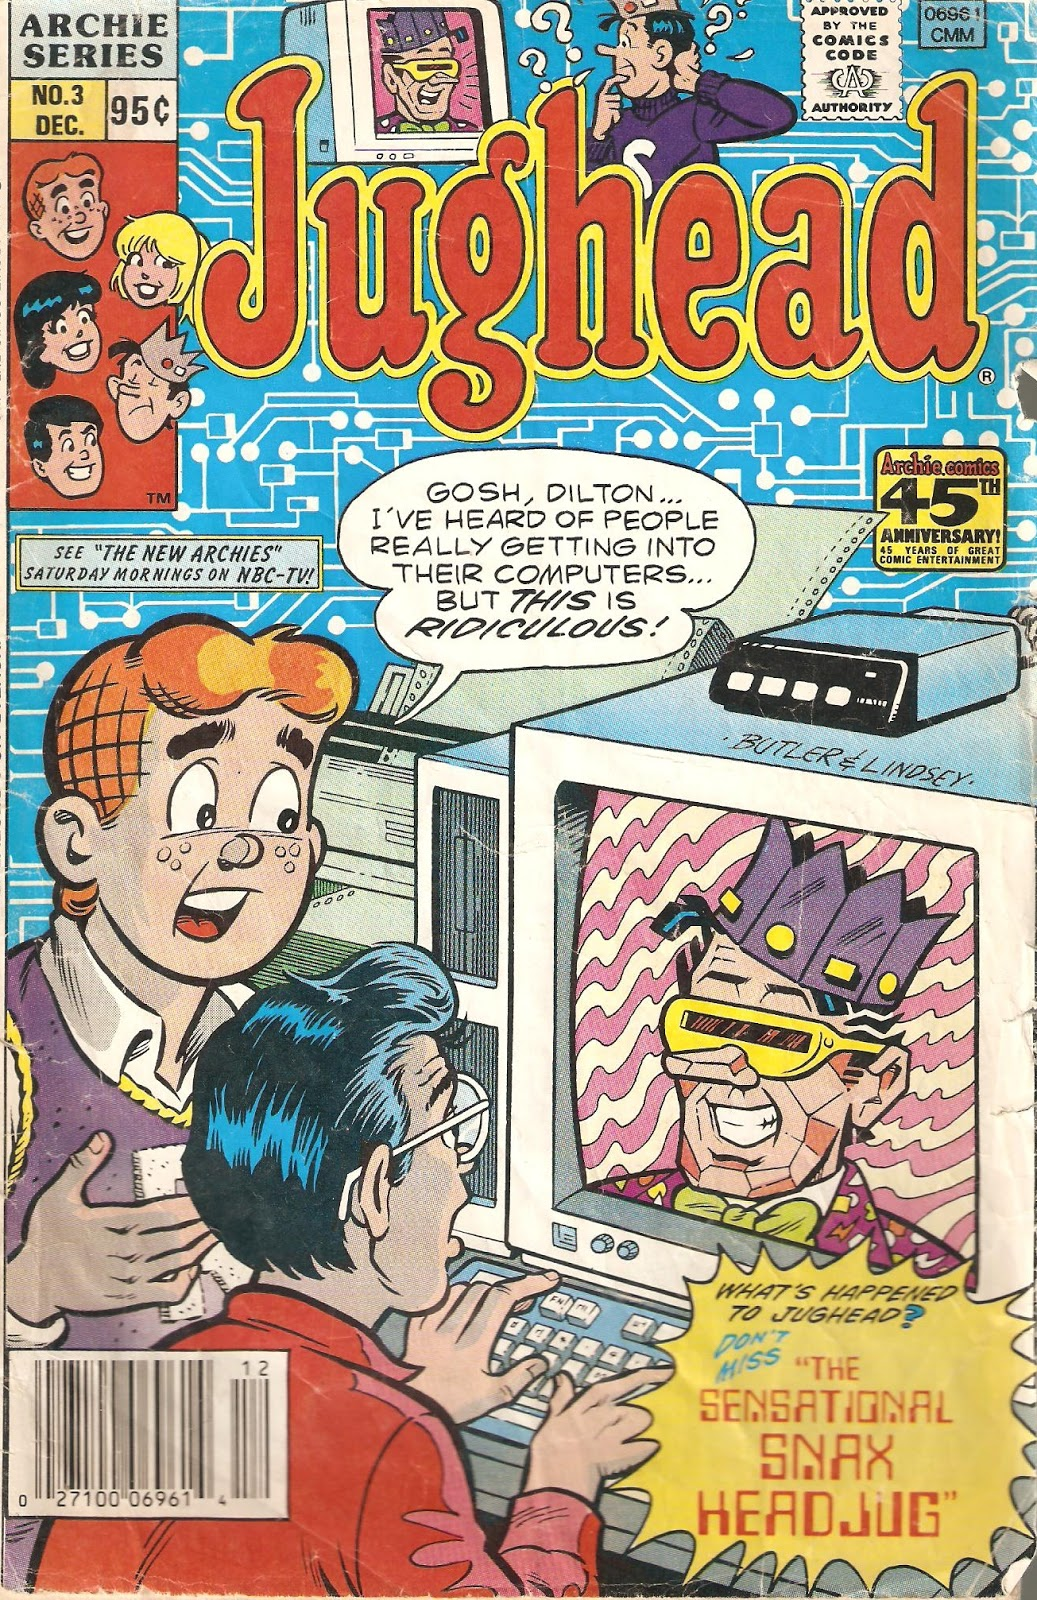 Square One TV Had Fax Headful Doonesbury Ron Headrest And Archie Comics Jug Snaxful